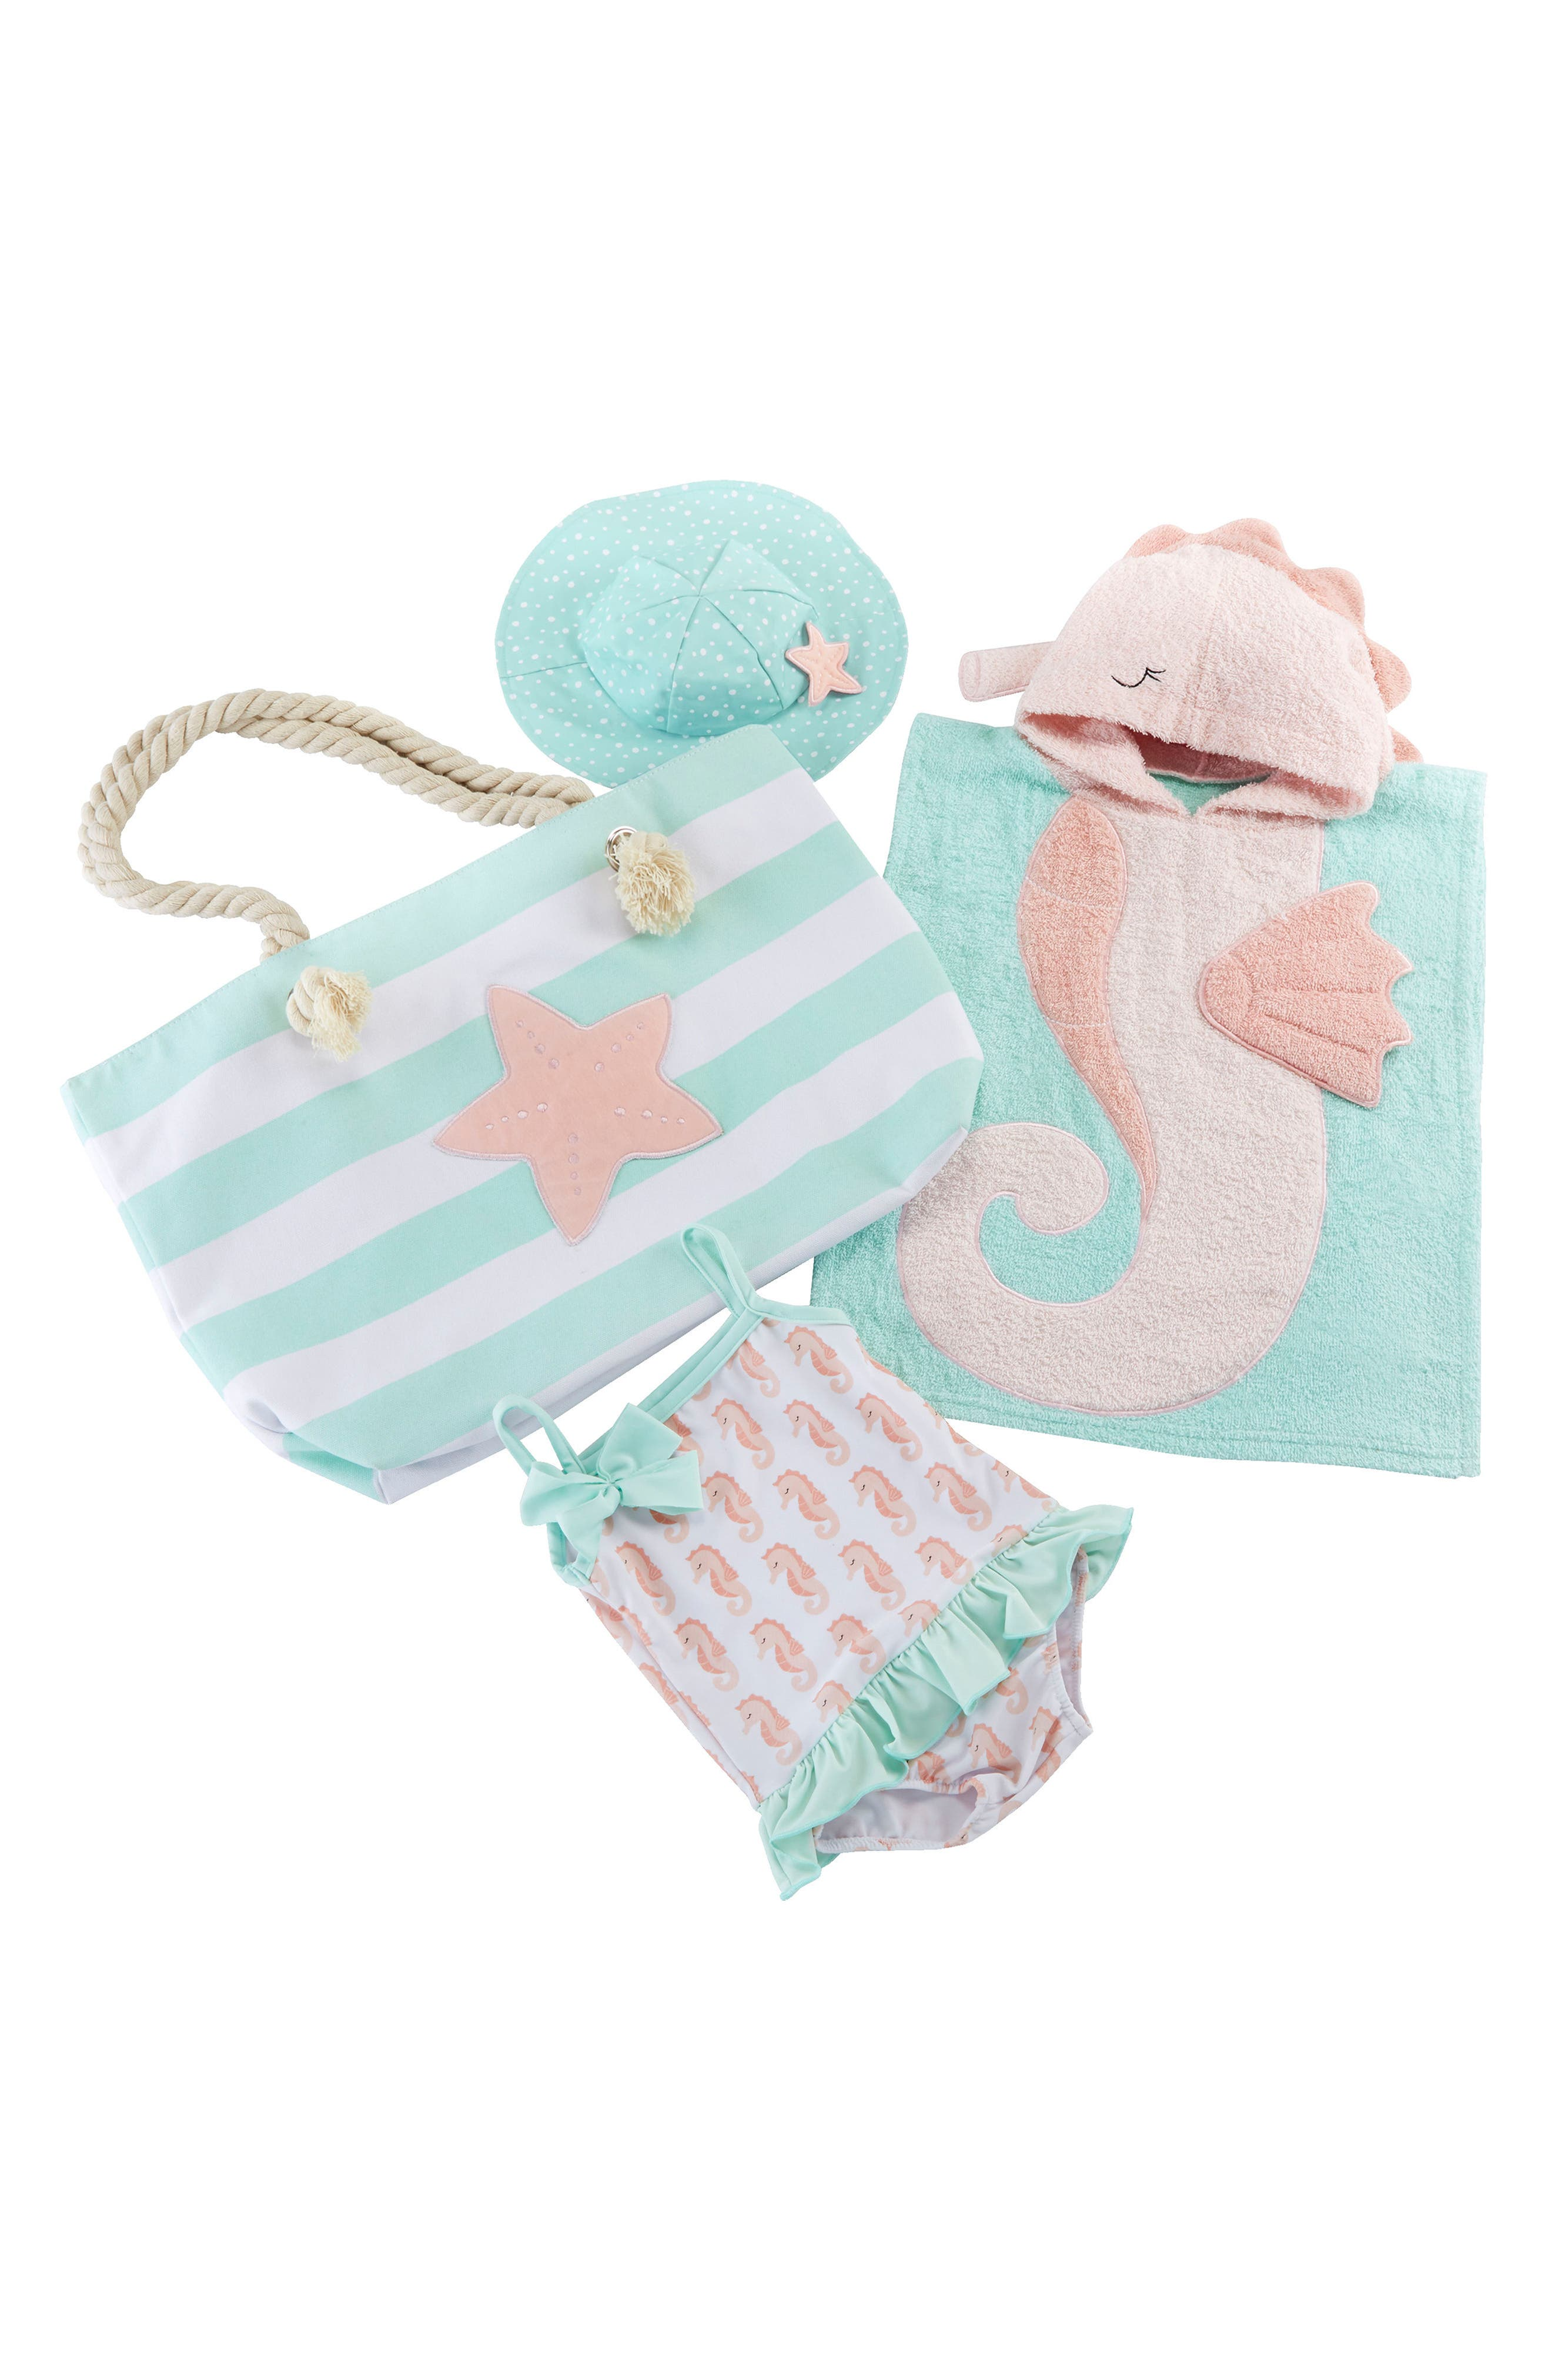 Seahorse Hooded Towel, Swimsuit, Sun Hat & Tote Set,                             Main thumbnail 1, color,                             PINK